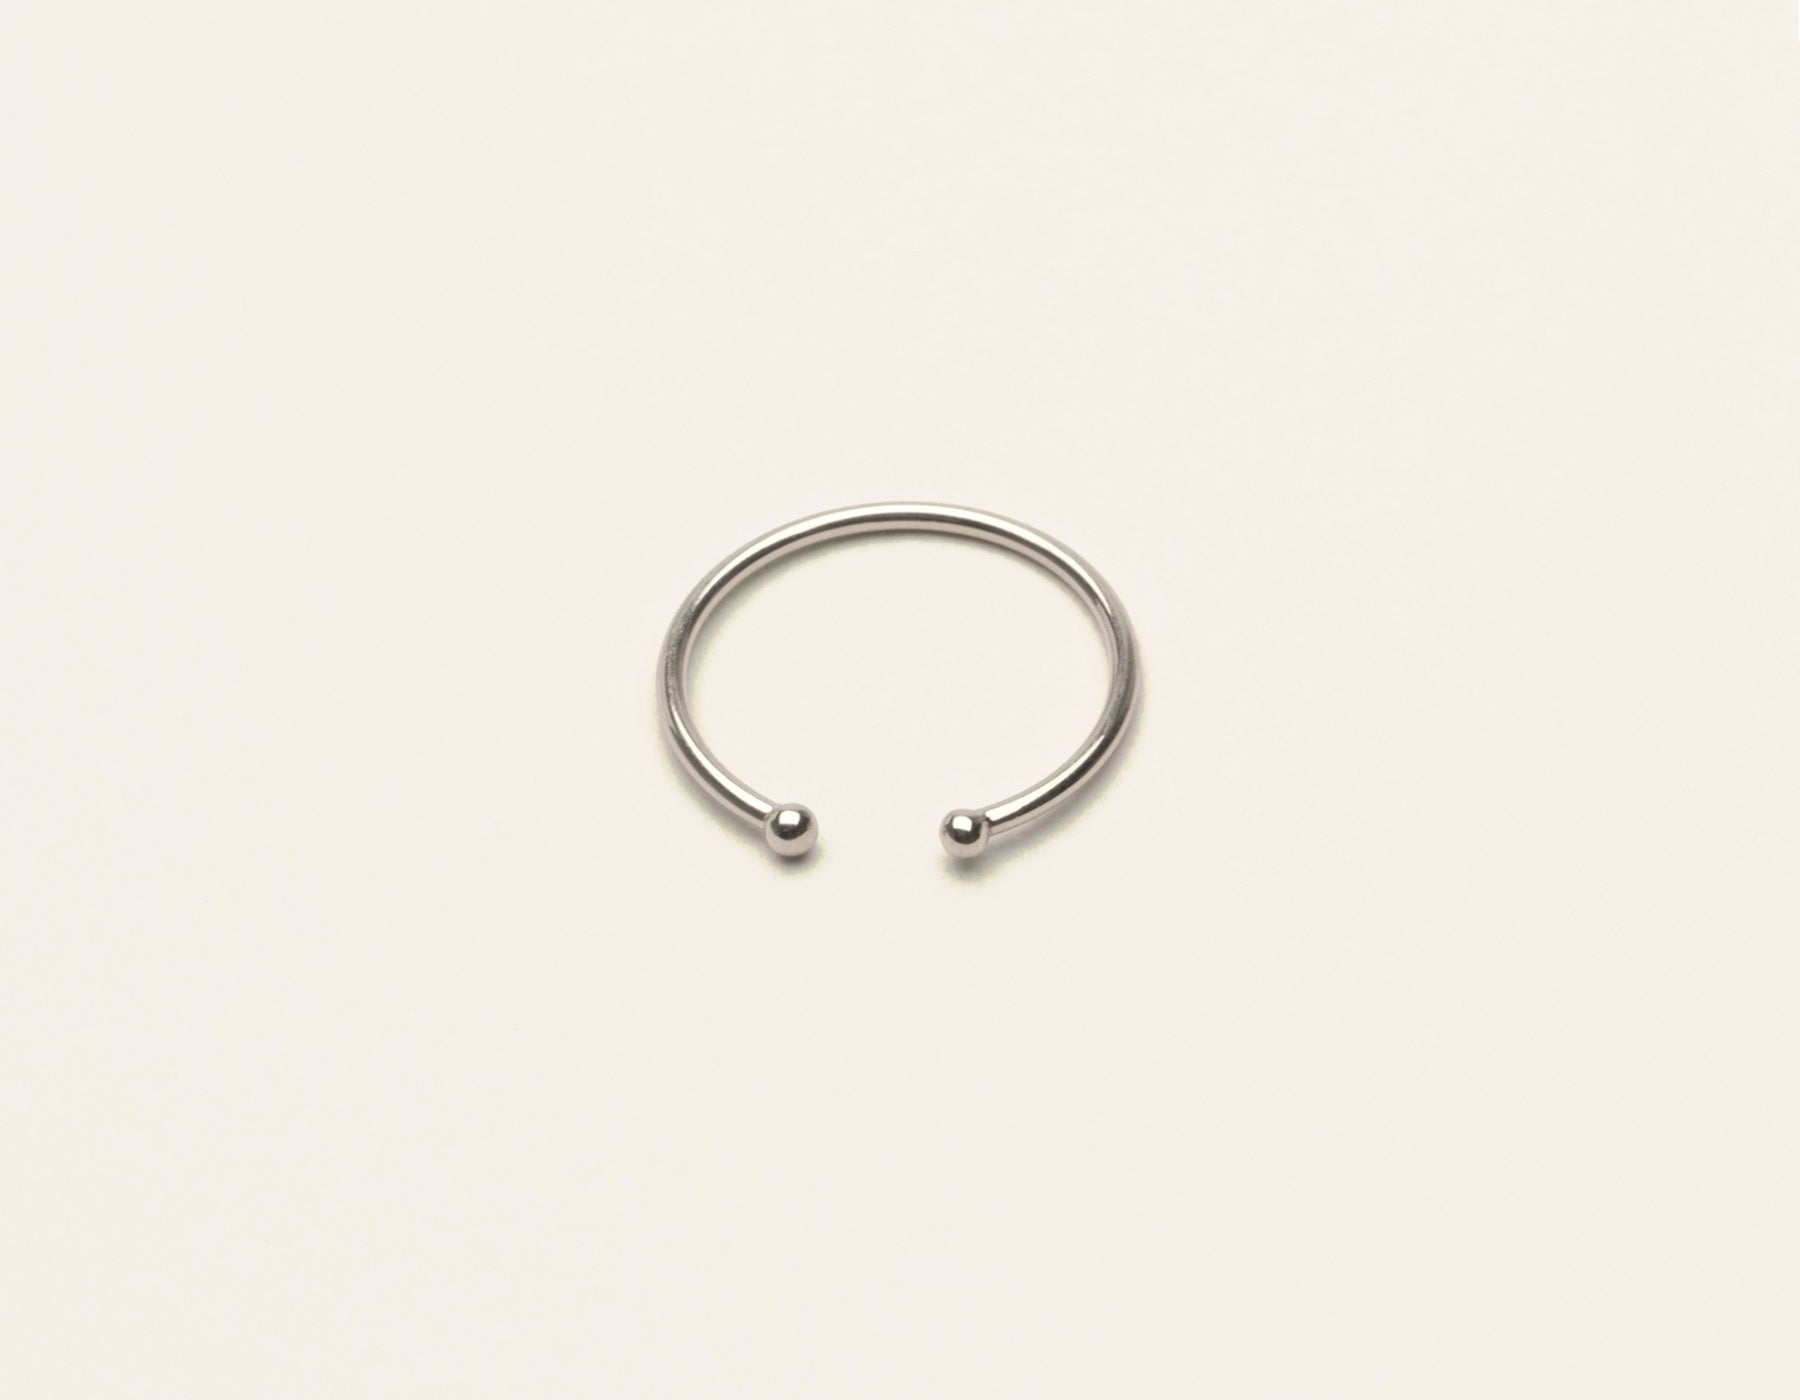 Simple modern 14k solid gold Dot Cuff Ring by Vrai and Oro minimalist jewelry, 14K White Gold